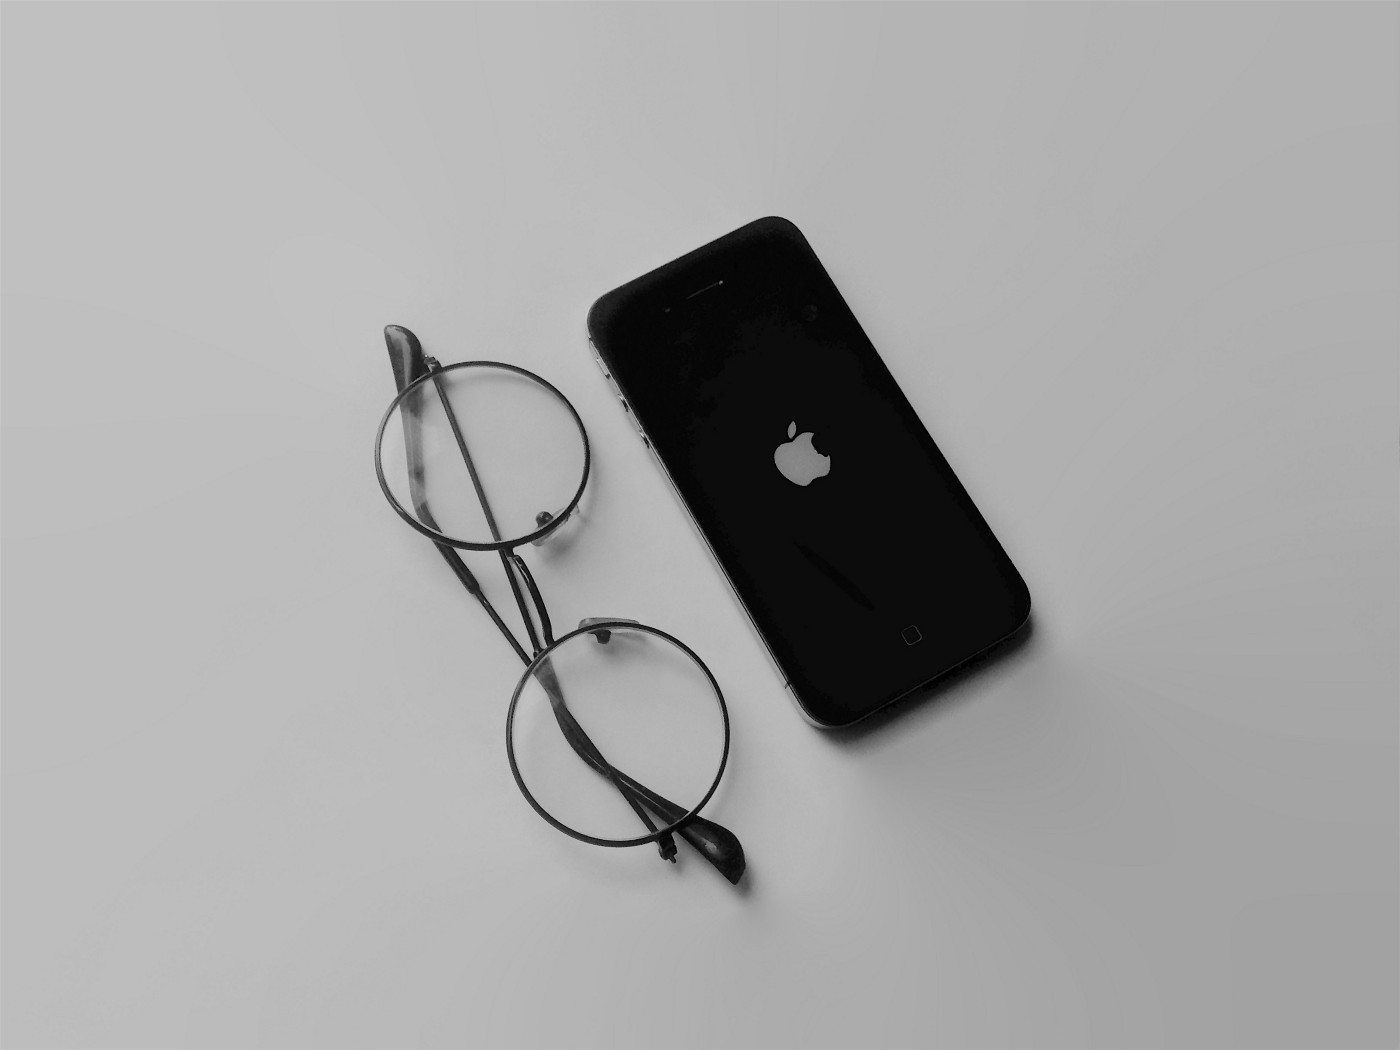 An iPhone placed next to a pair of round-framed glasses.